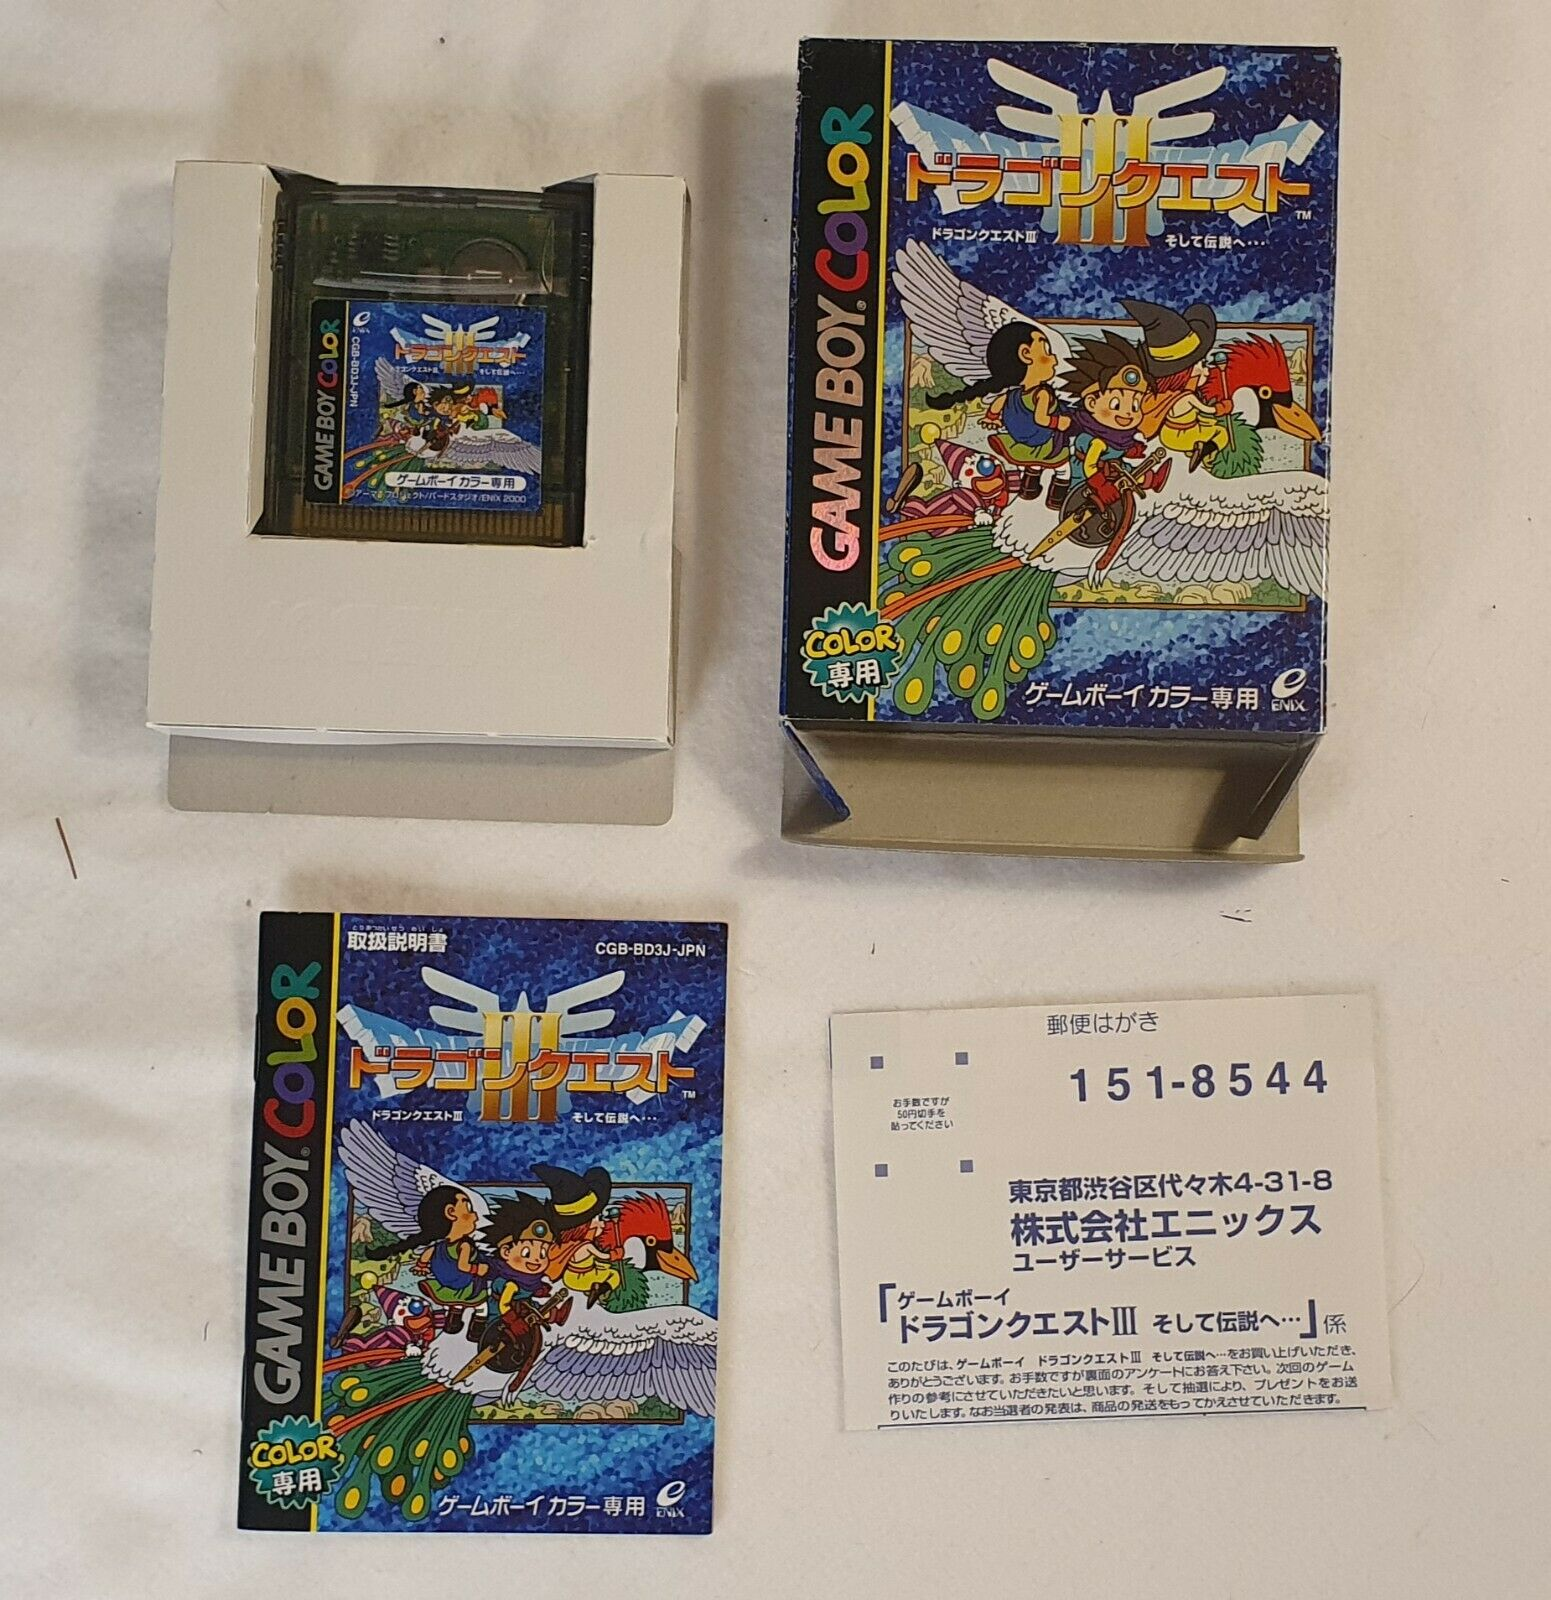 Gameboy Color Nintendo Dragon Quest Iii 3 Dq3 Japanese Version For Sale Online